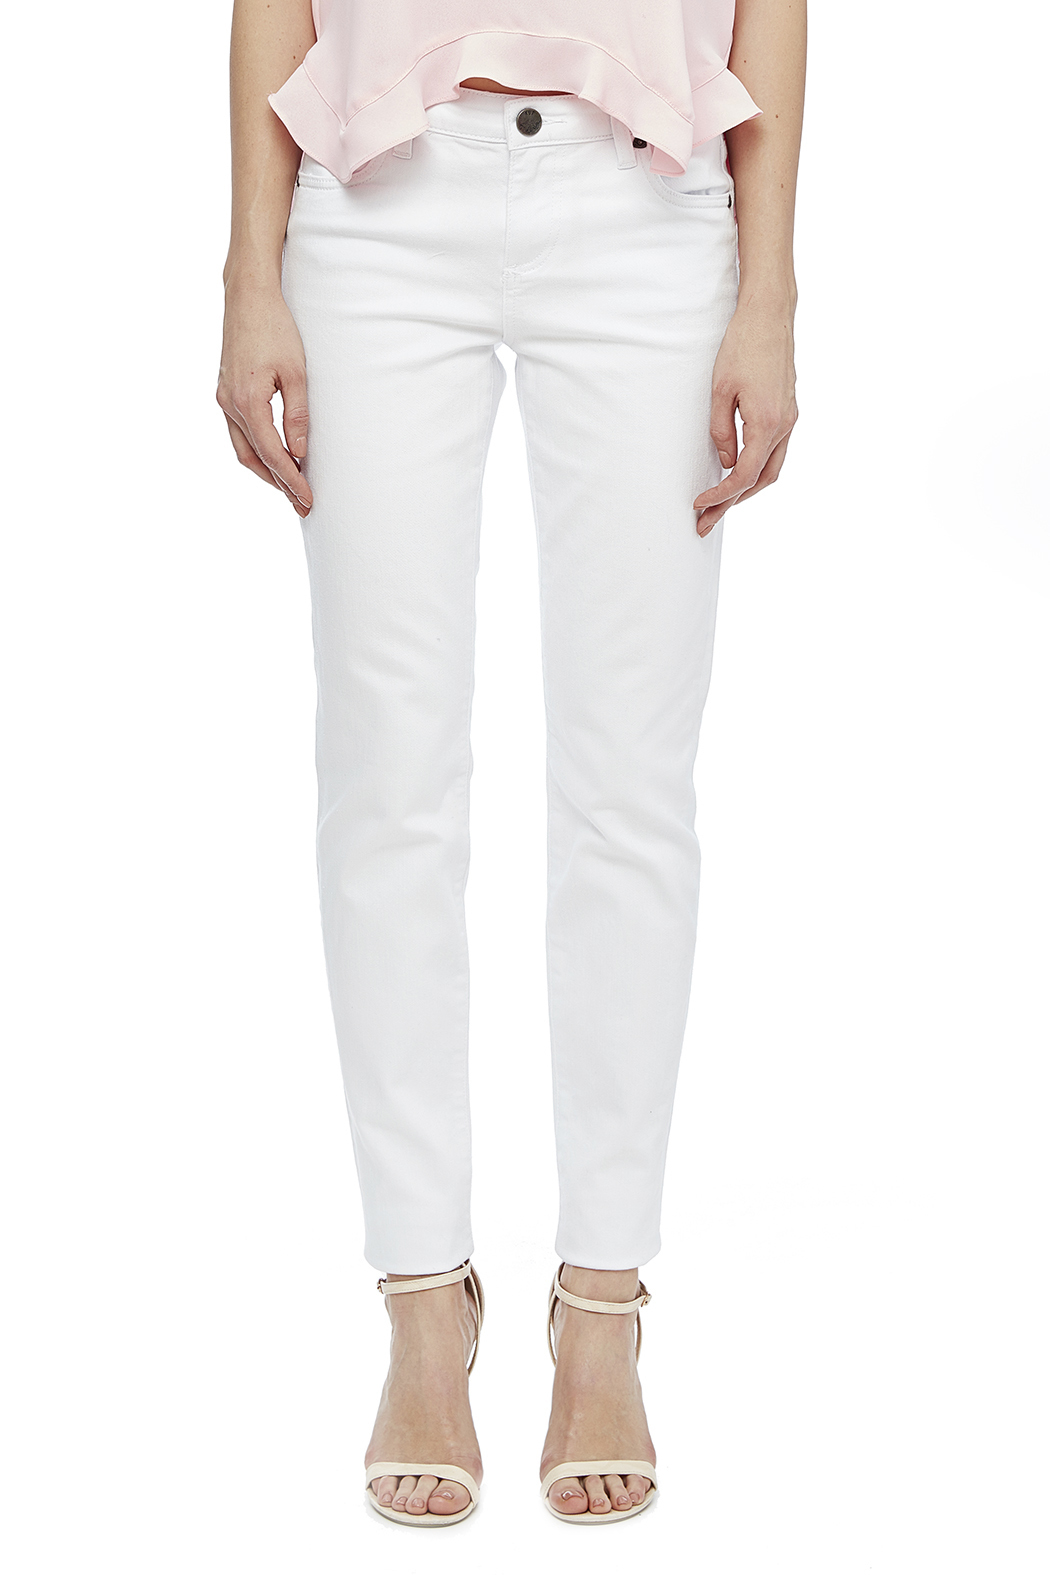 Kut from the Kloth White Skinny Jean - Side Cropped Image